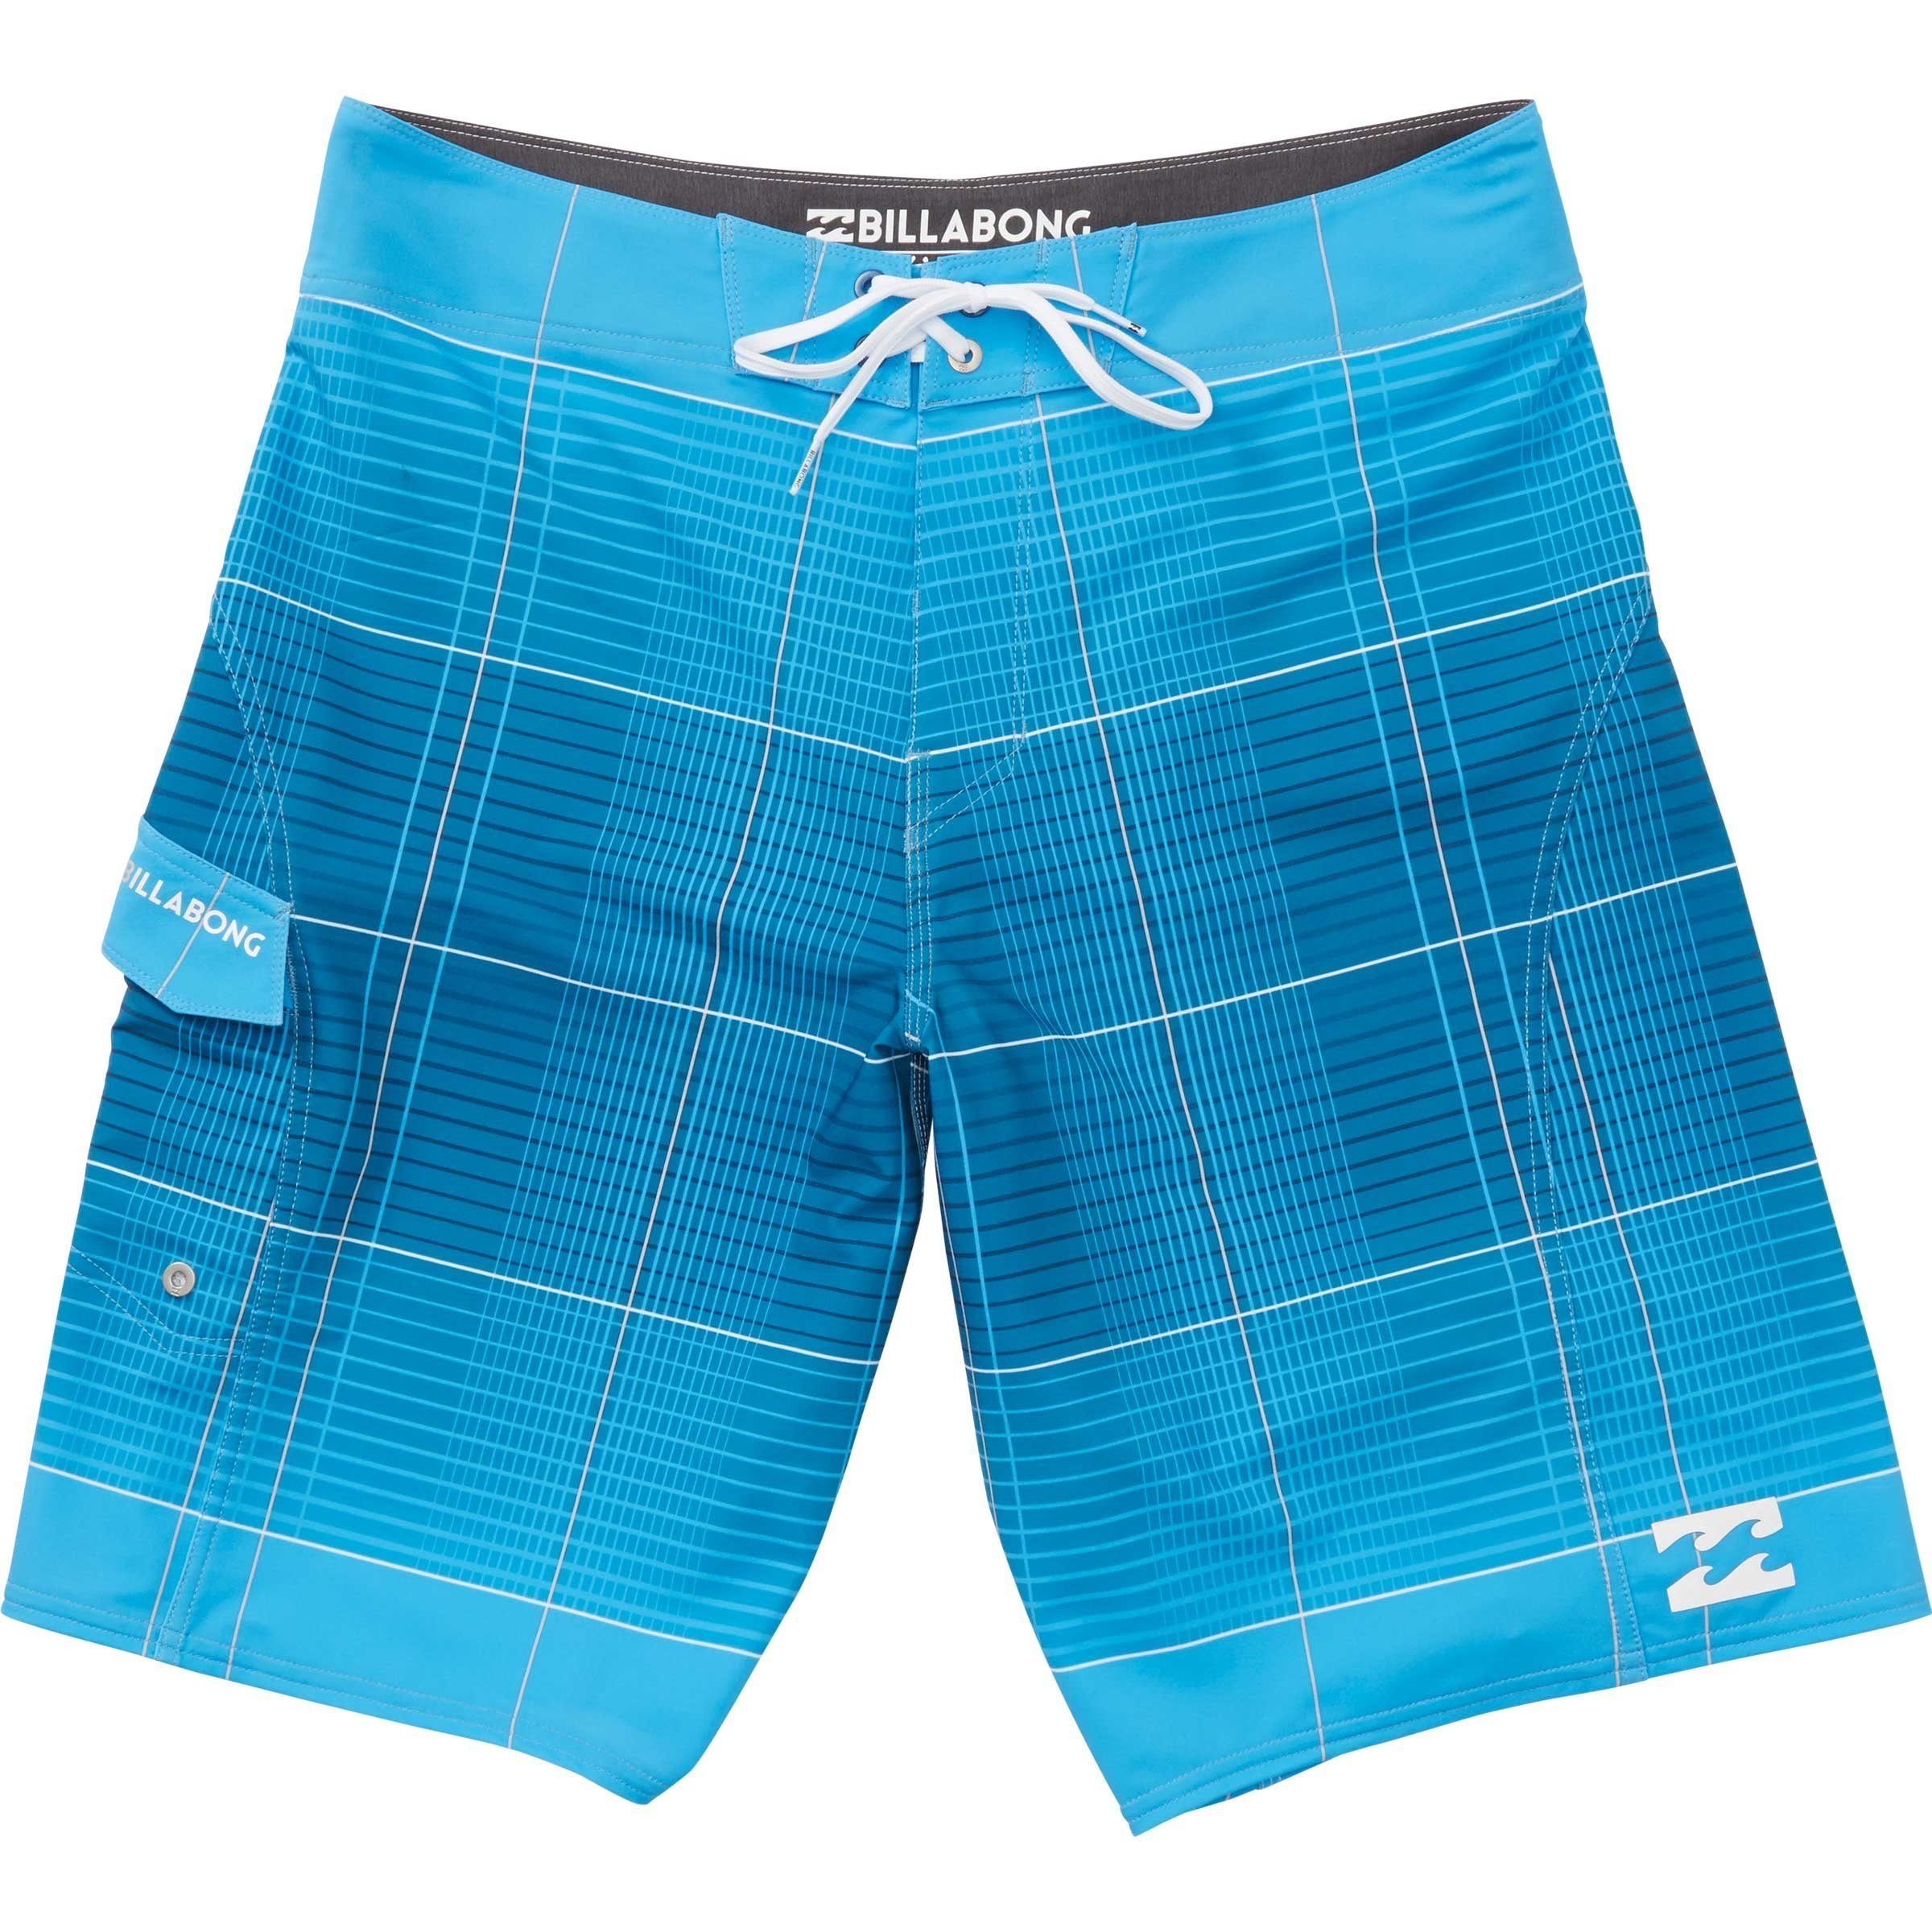 Billabong Men's All Day X Plaid Stretch Boardshort, Blue, 30